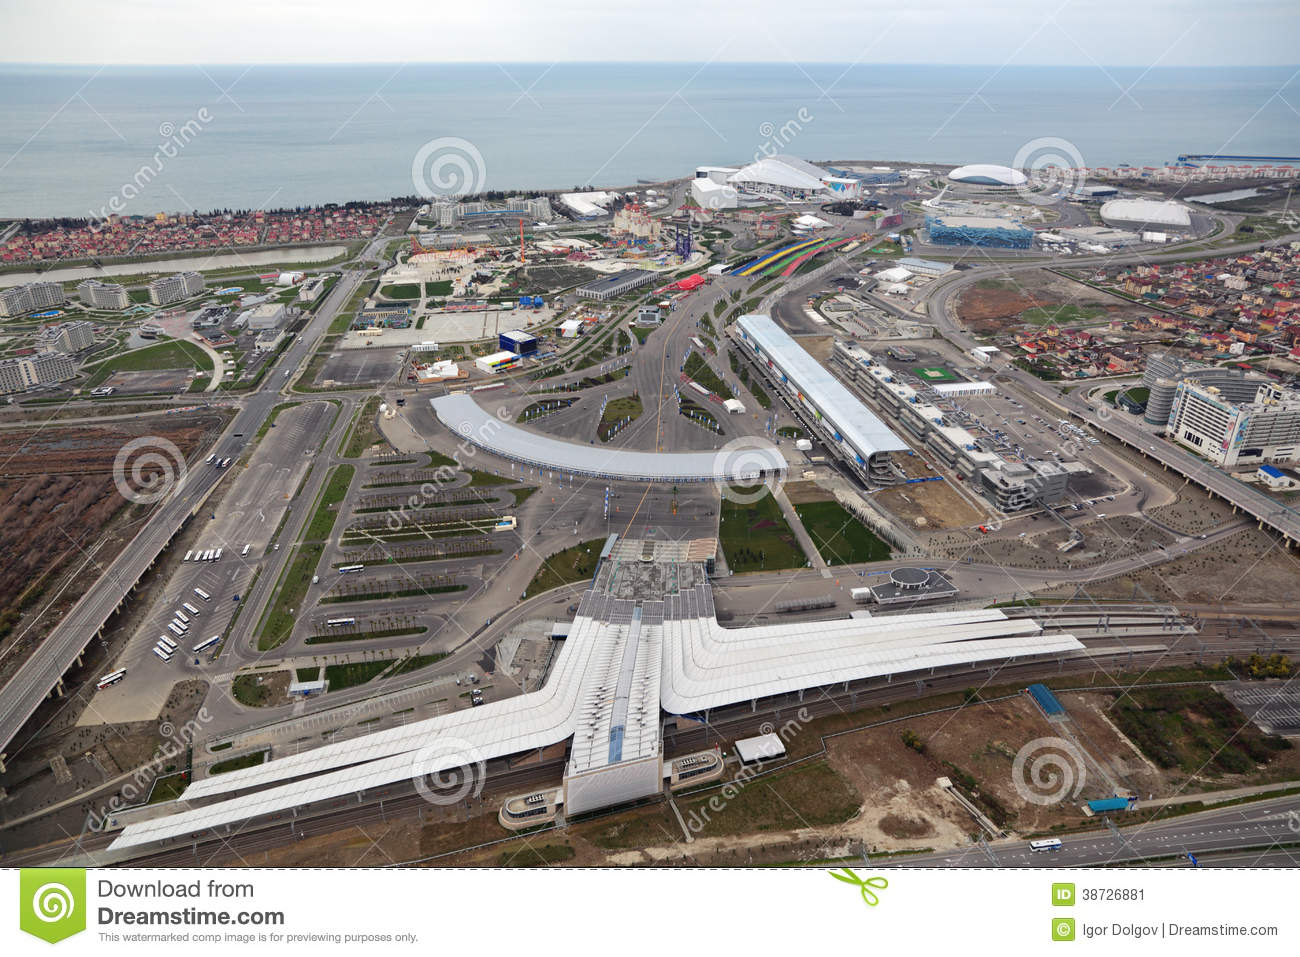 Adler Russia  city photos : SOCHI, ADLER, RUSSIA MAR 02, 2014: Olympic Park and train station in ...